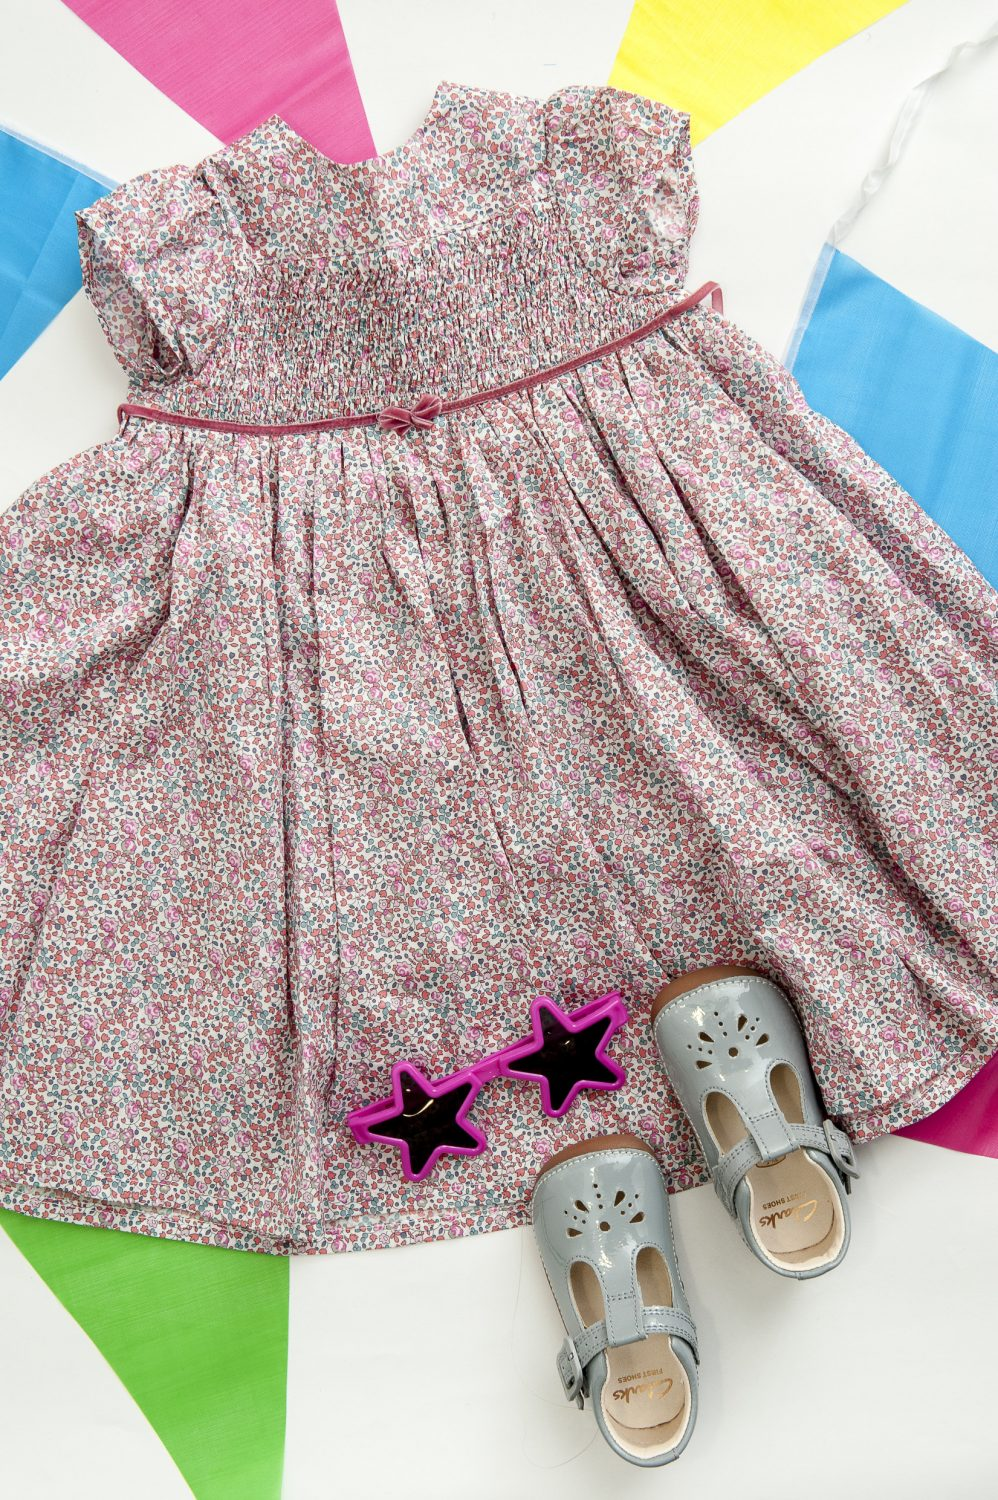 'Charlotte' dress, £59, Milliemanu 020 8878 7863 milliemanu.com; Clarks 'Little Weave' shoes, £26, The Golden Boot, Maidstone 01622 752349 thegoldenboot.co.uk